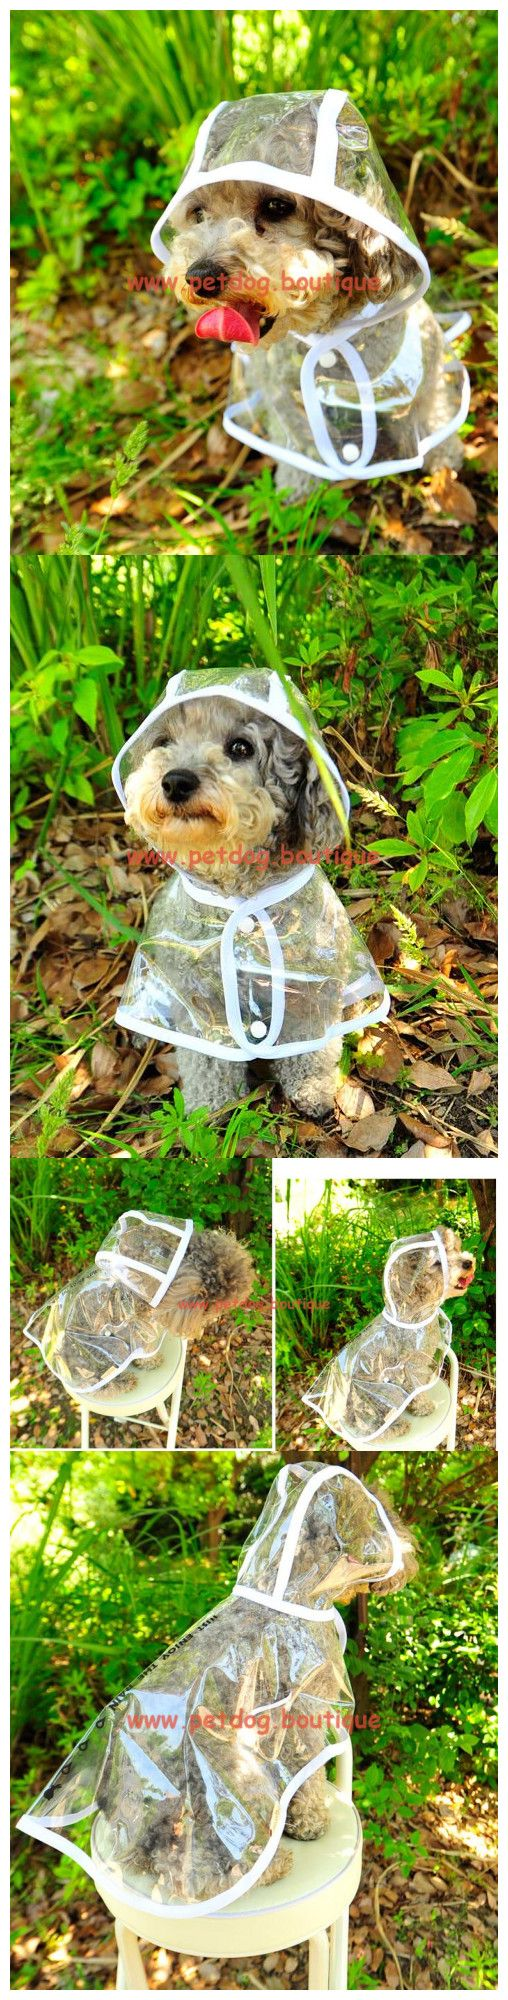 $19.99 Dog Raincoat Small Dog Raincoat Raincoats for Dogs